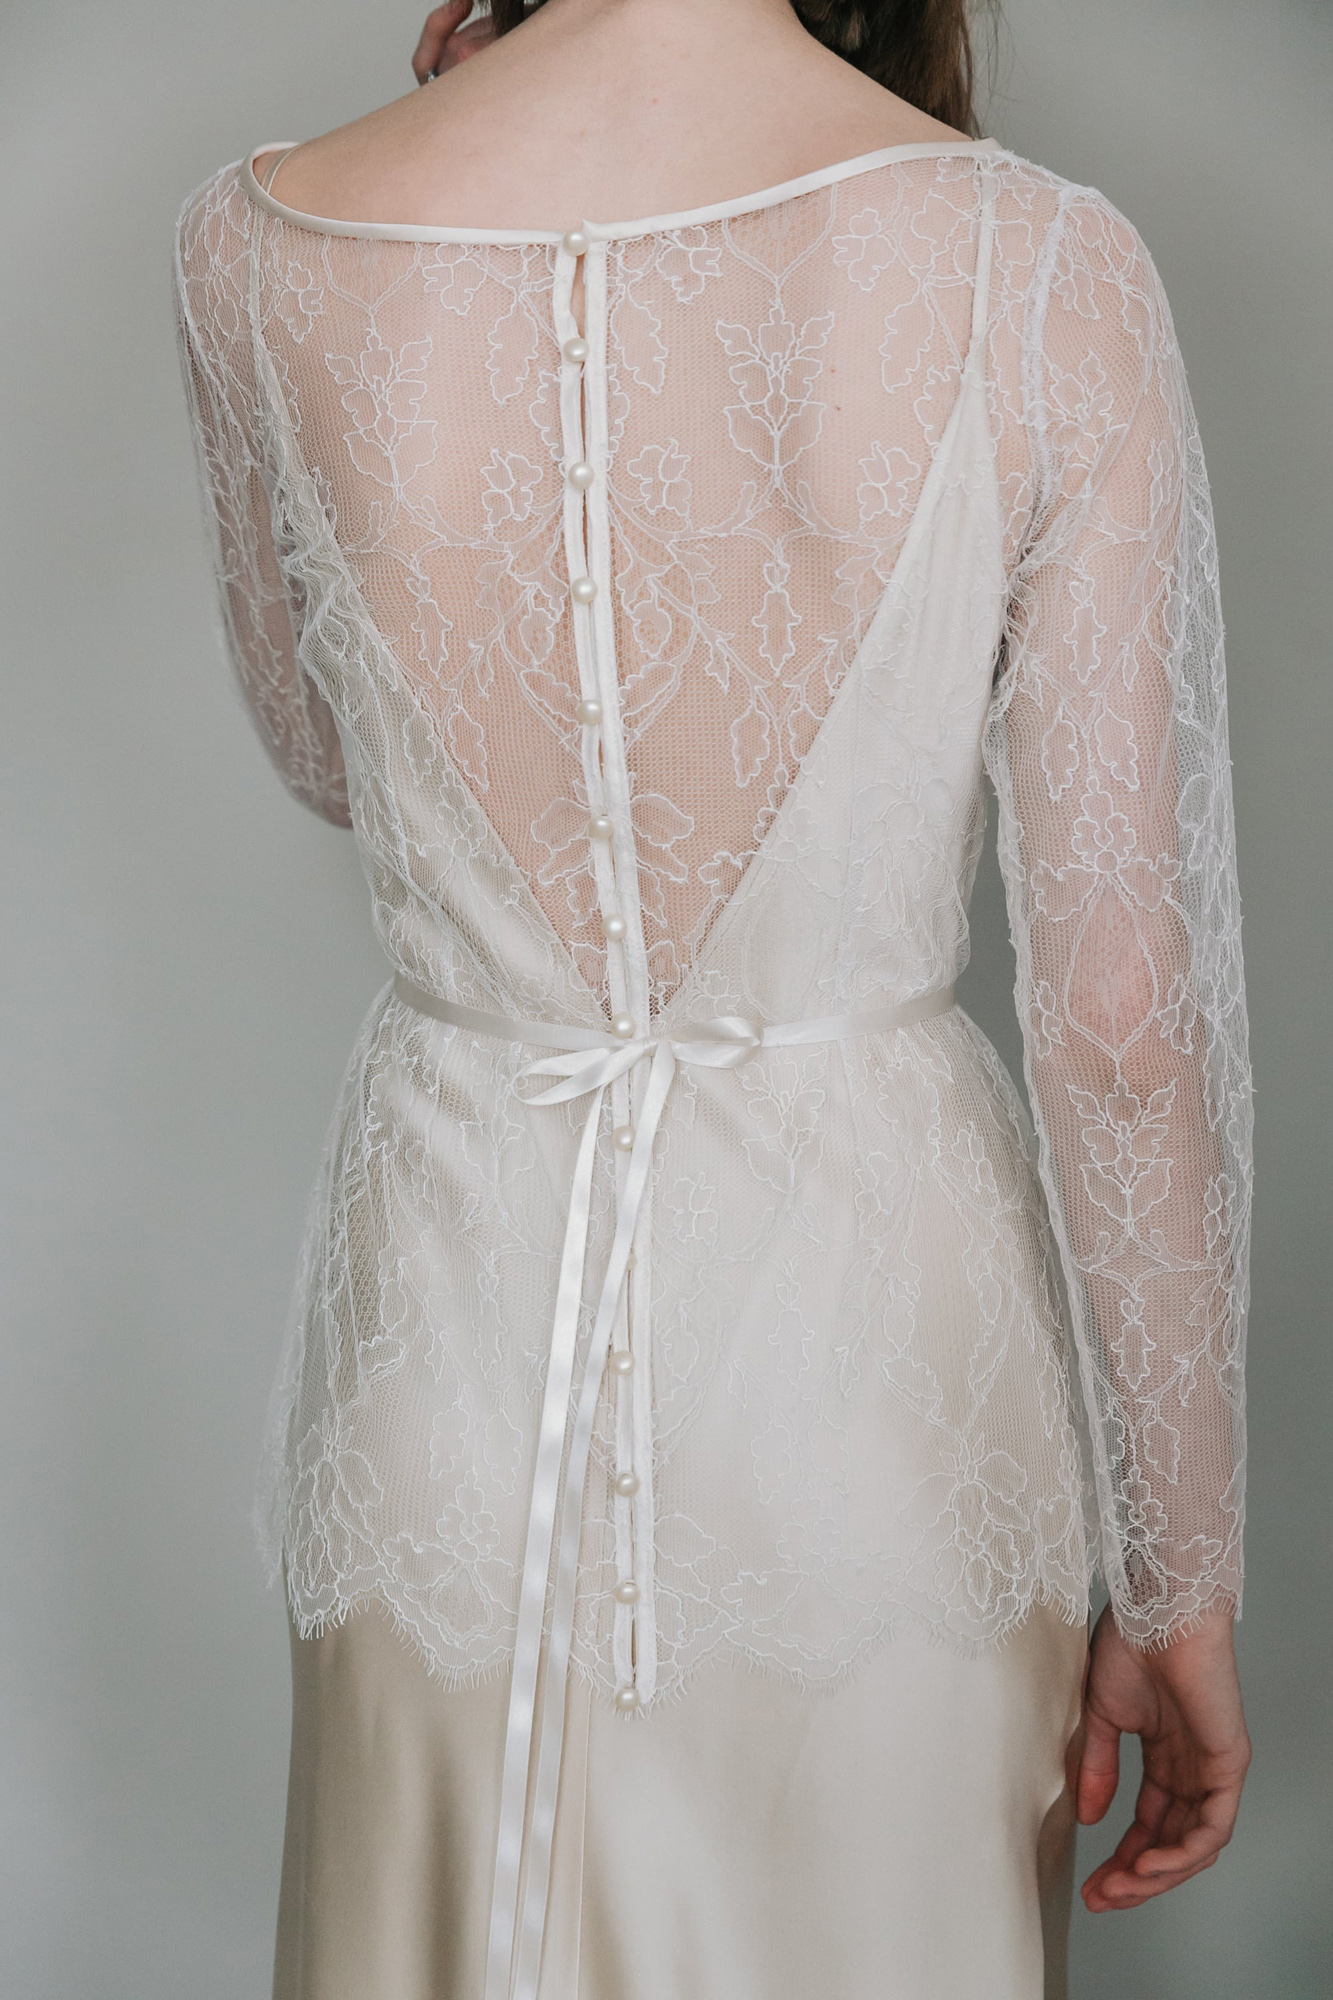 Kate-Beaumont-Sheffield-Thistle-Bridal-Separates-Two-Piece-Lace-Silk-Wedding-Gown-9.jpg